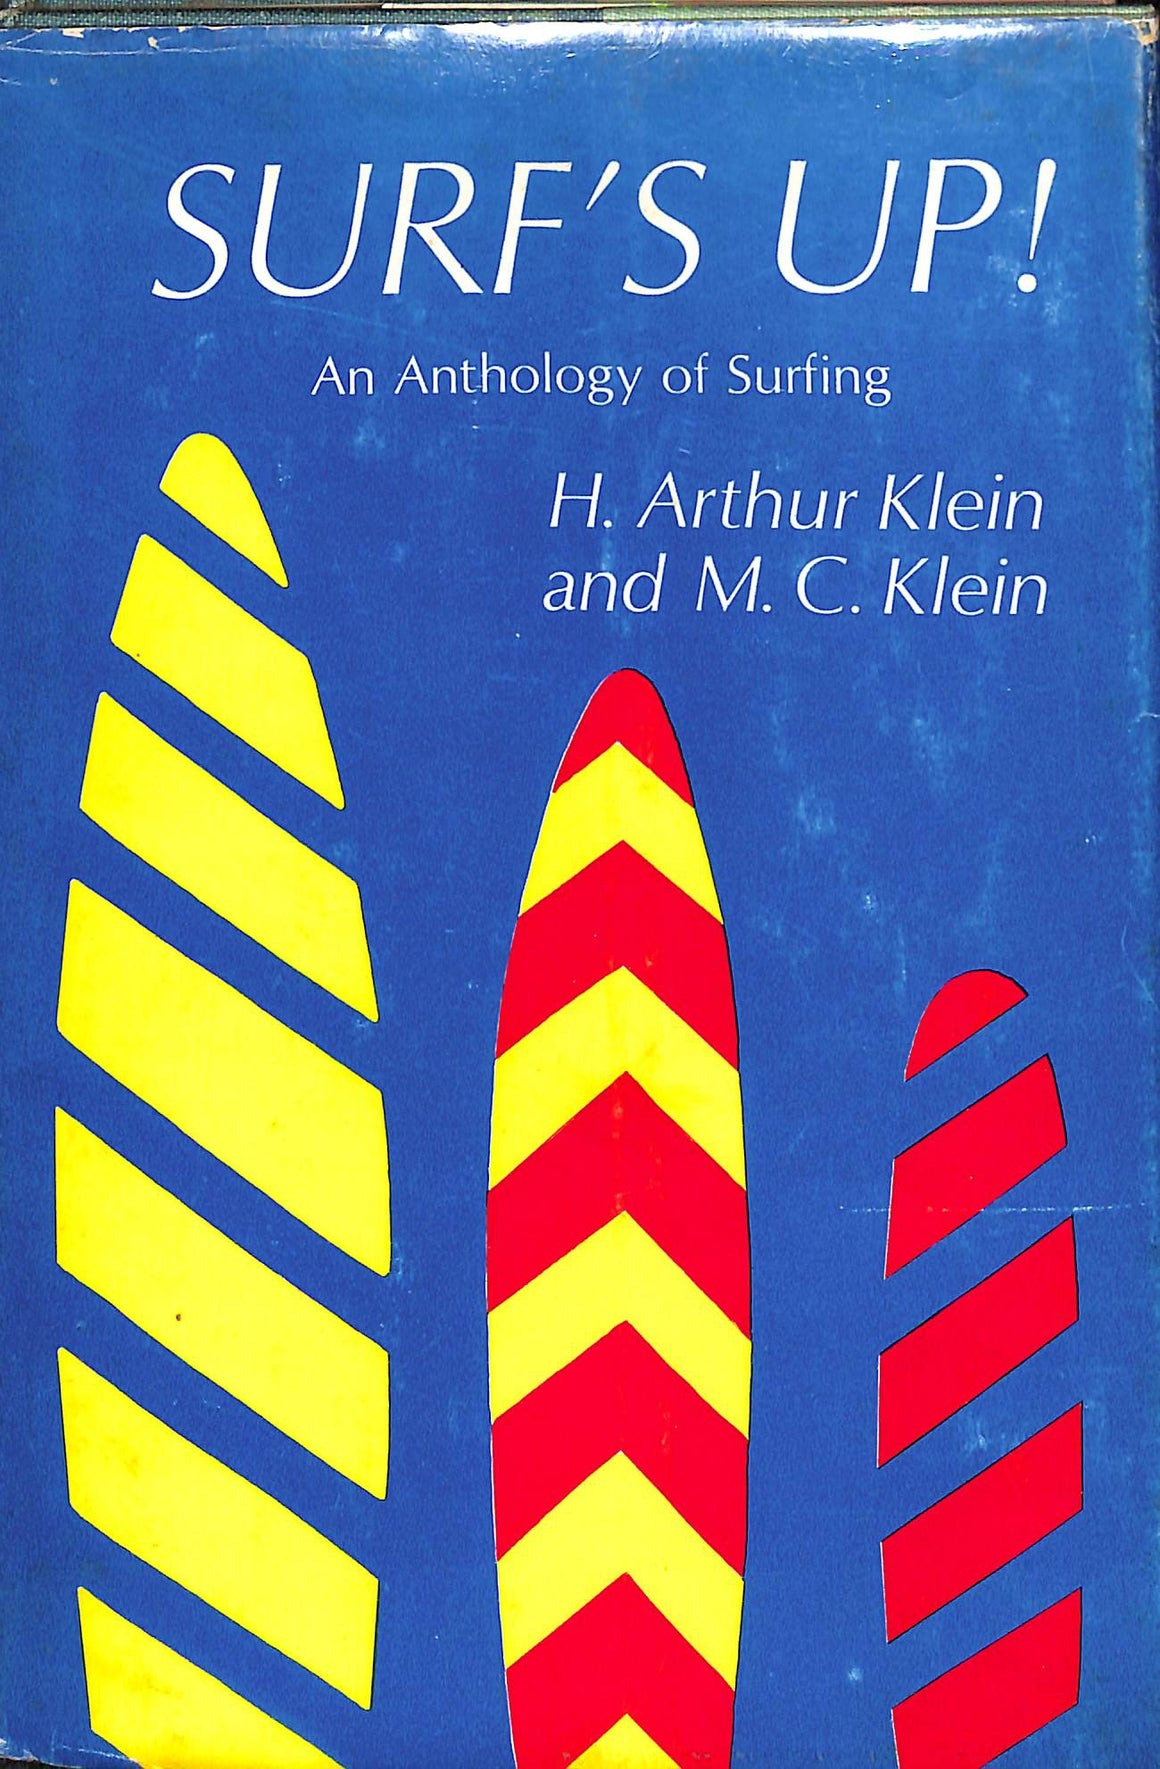 Surf's Up! An Anthology of Surfing by H. Arthur Klein and M.C. Klein